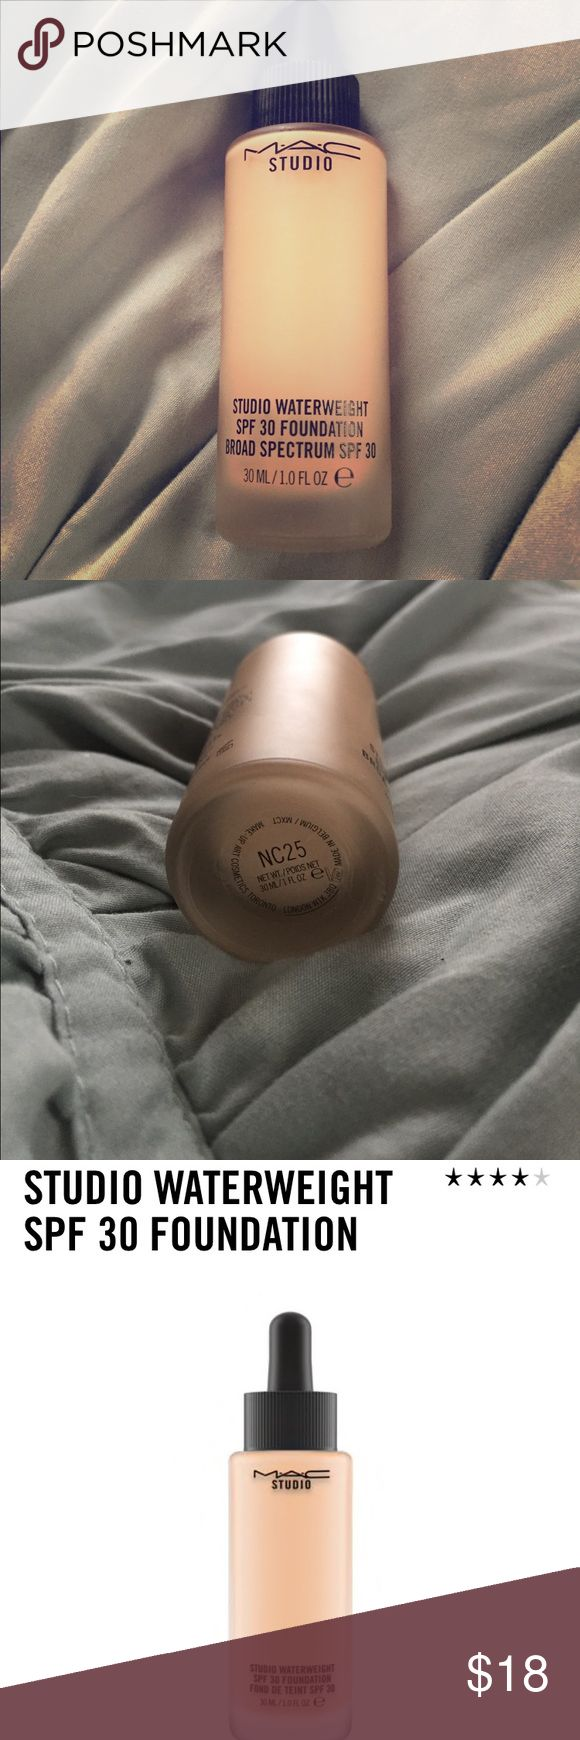 MAC Studio Waterweight Foundation NC25 Used 5-10 times. I prefer bare minerals :) Purchased last year at Macy's; no box. MAC Cosmetics Makeup Foundation